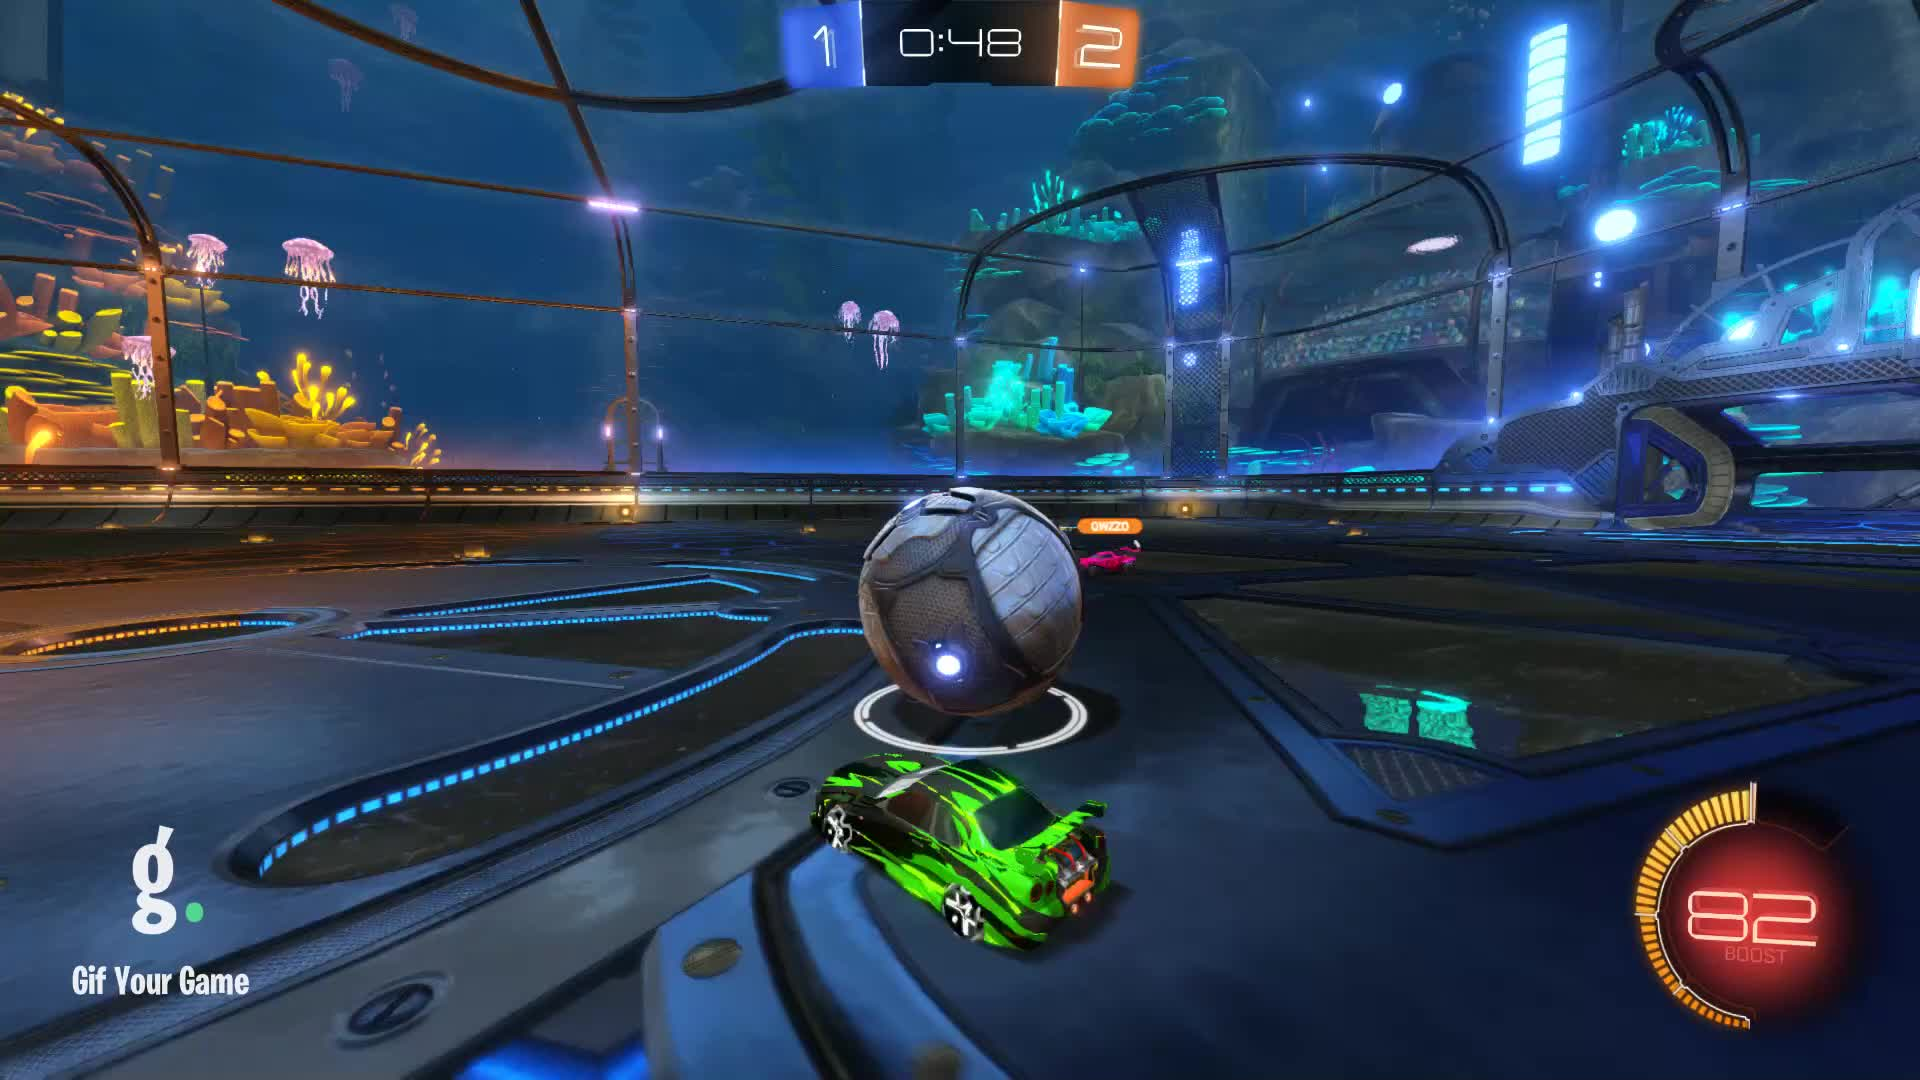 DRAGONGHOST, Gif Your Game, GifYourGame, Goal, Rocket League, RocketLeague, Goal 4: DRAGONGHOST GIFs